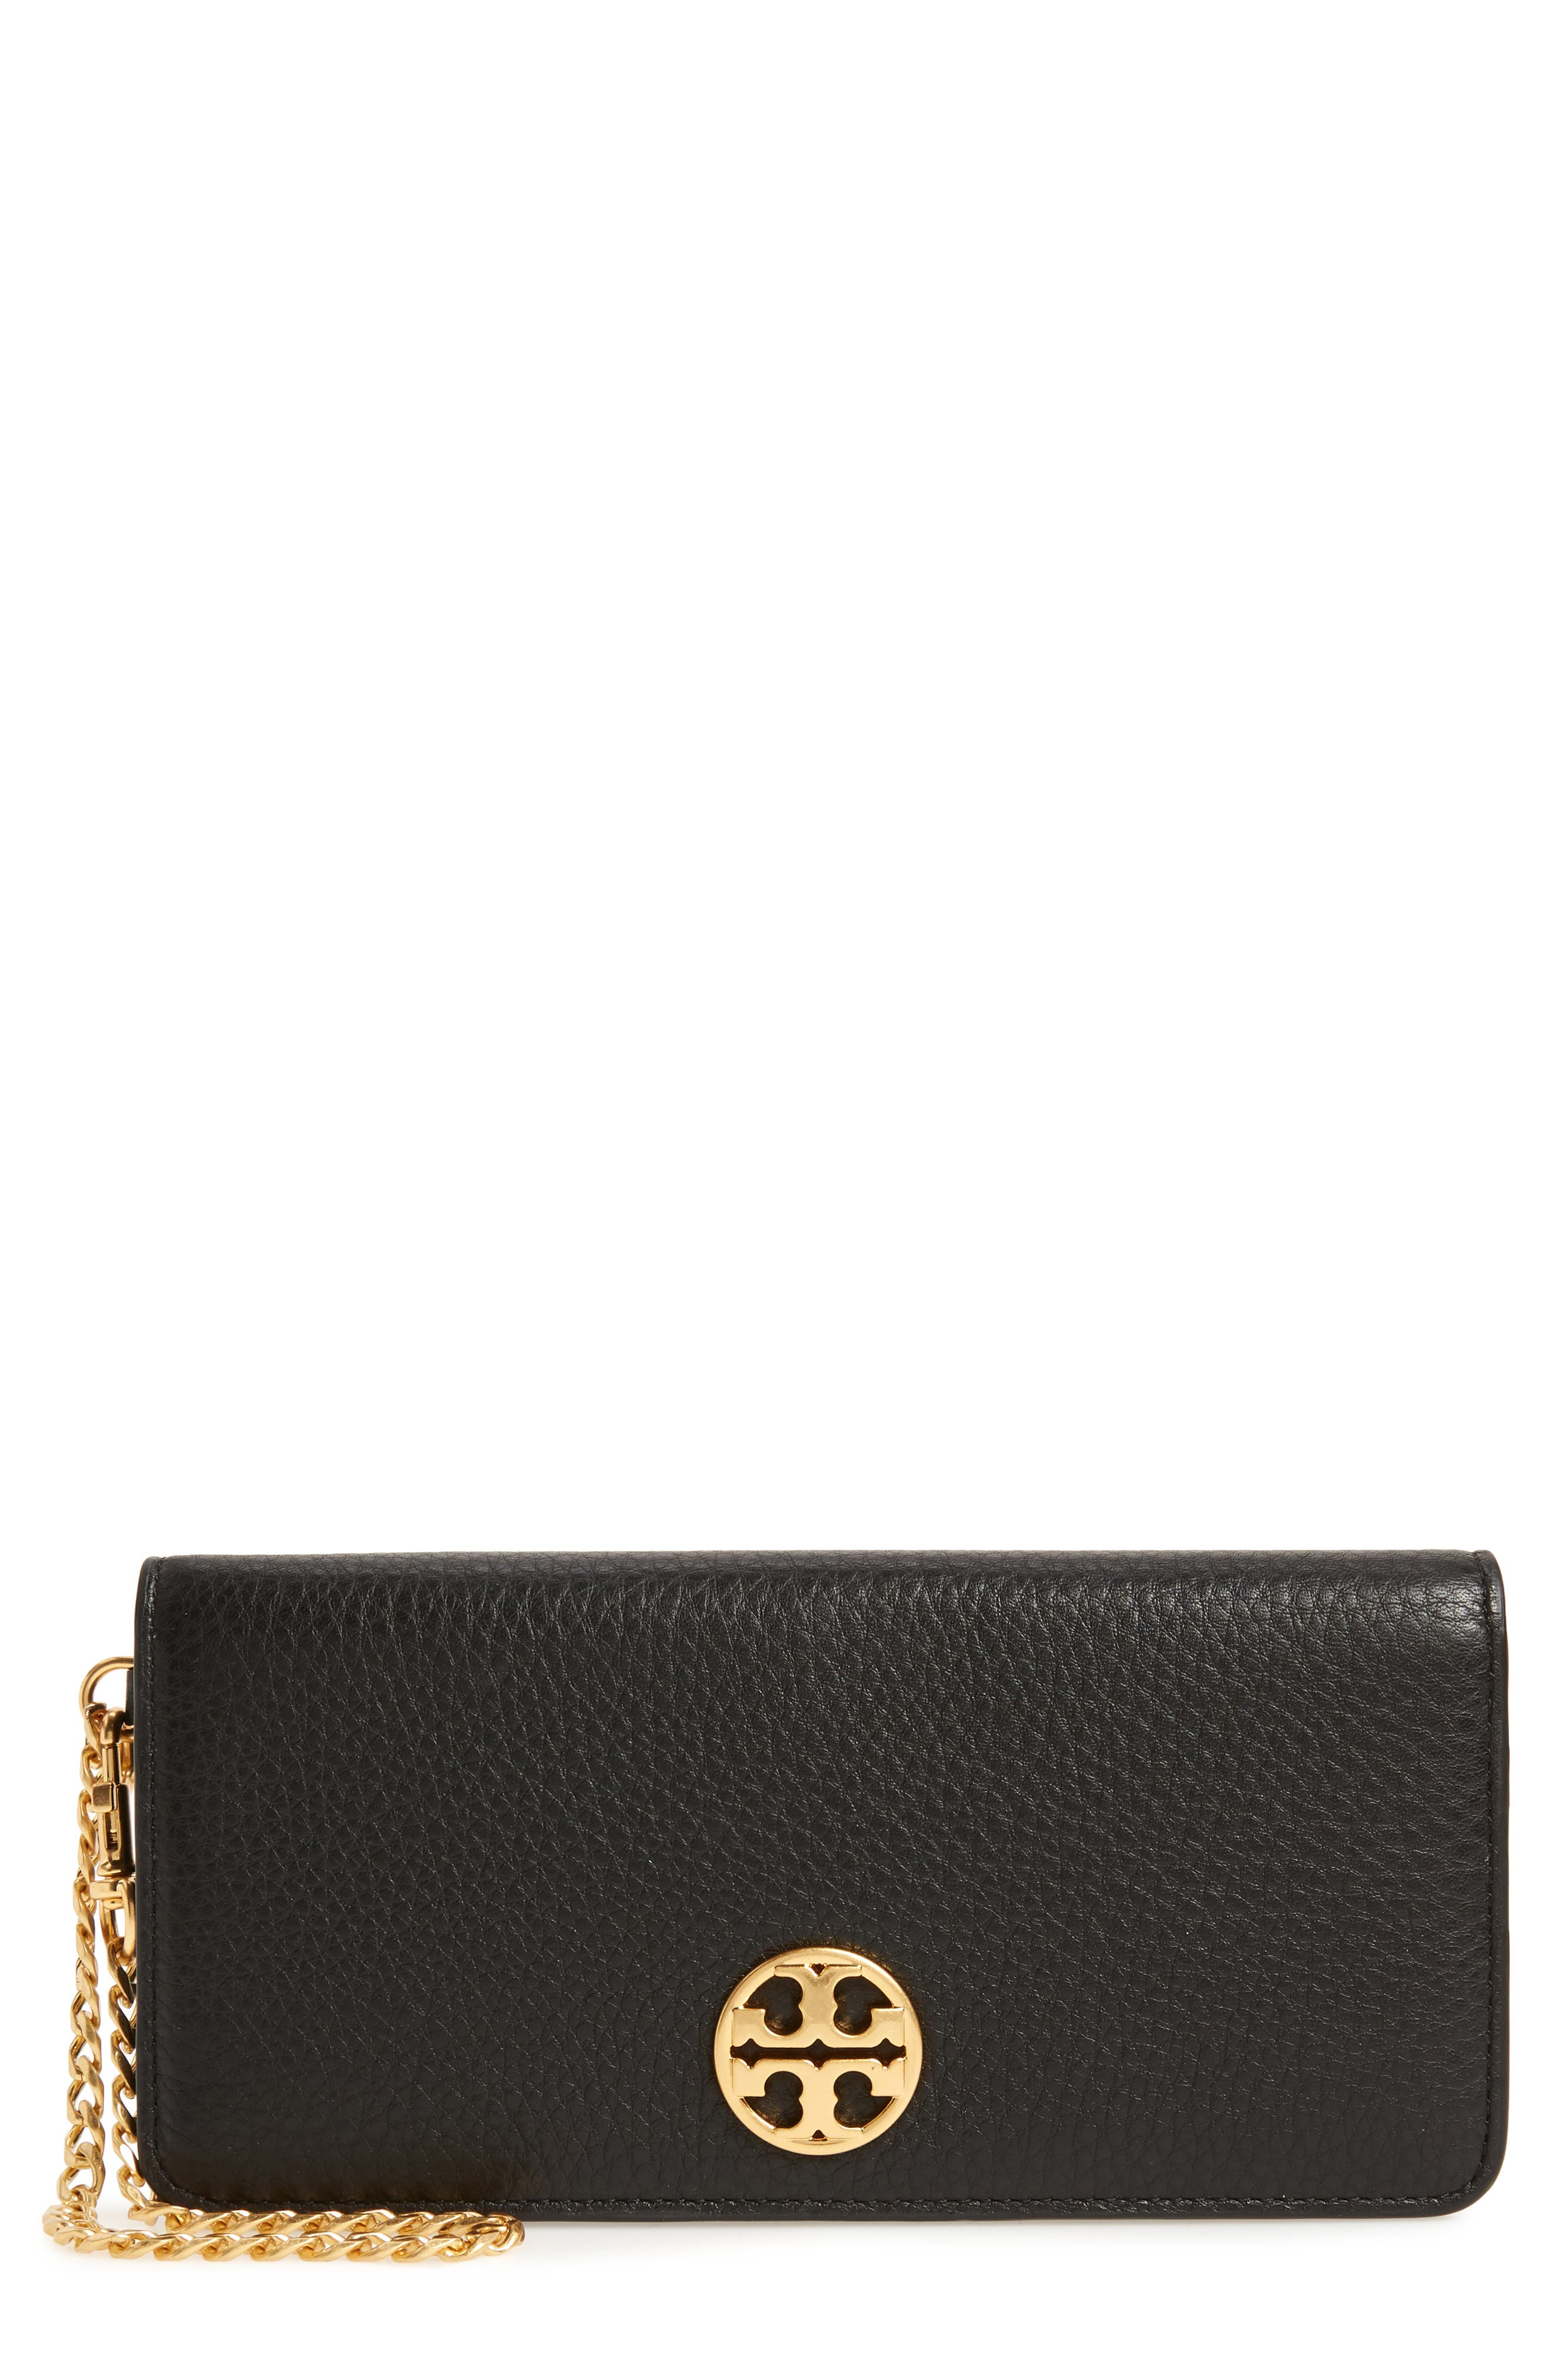 TORY BURCH Chelsea Leather Wristlet Wallet, Main, color, 001